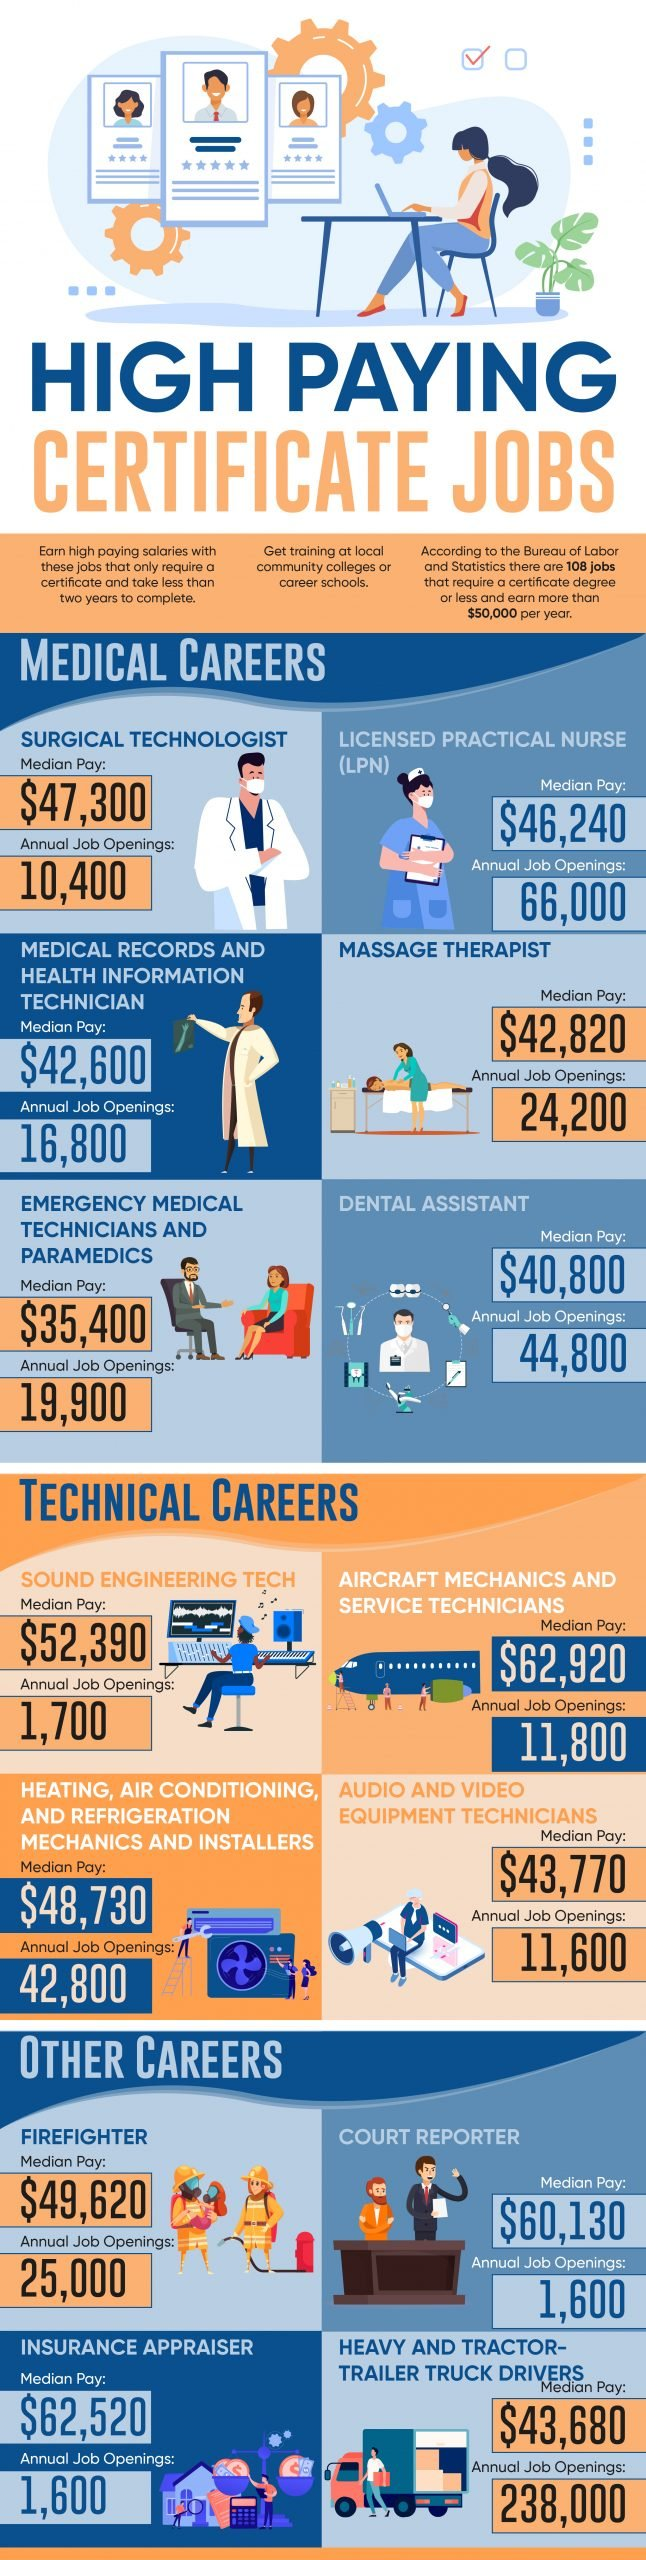 High Paying Certificate Jobs Infographic